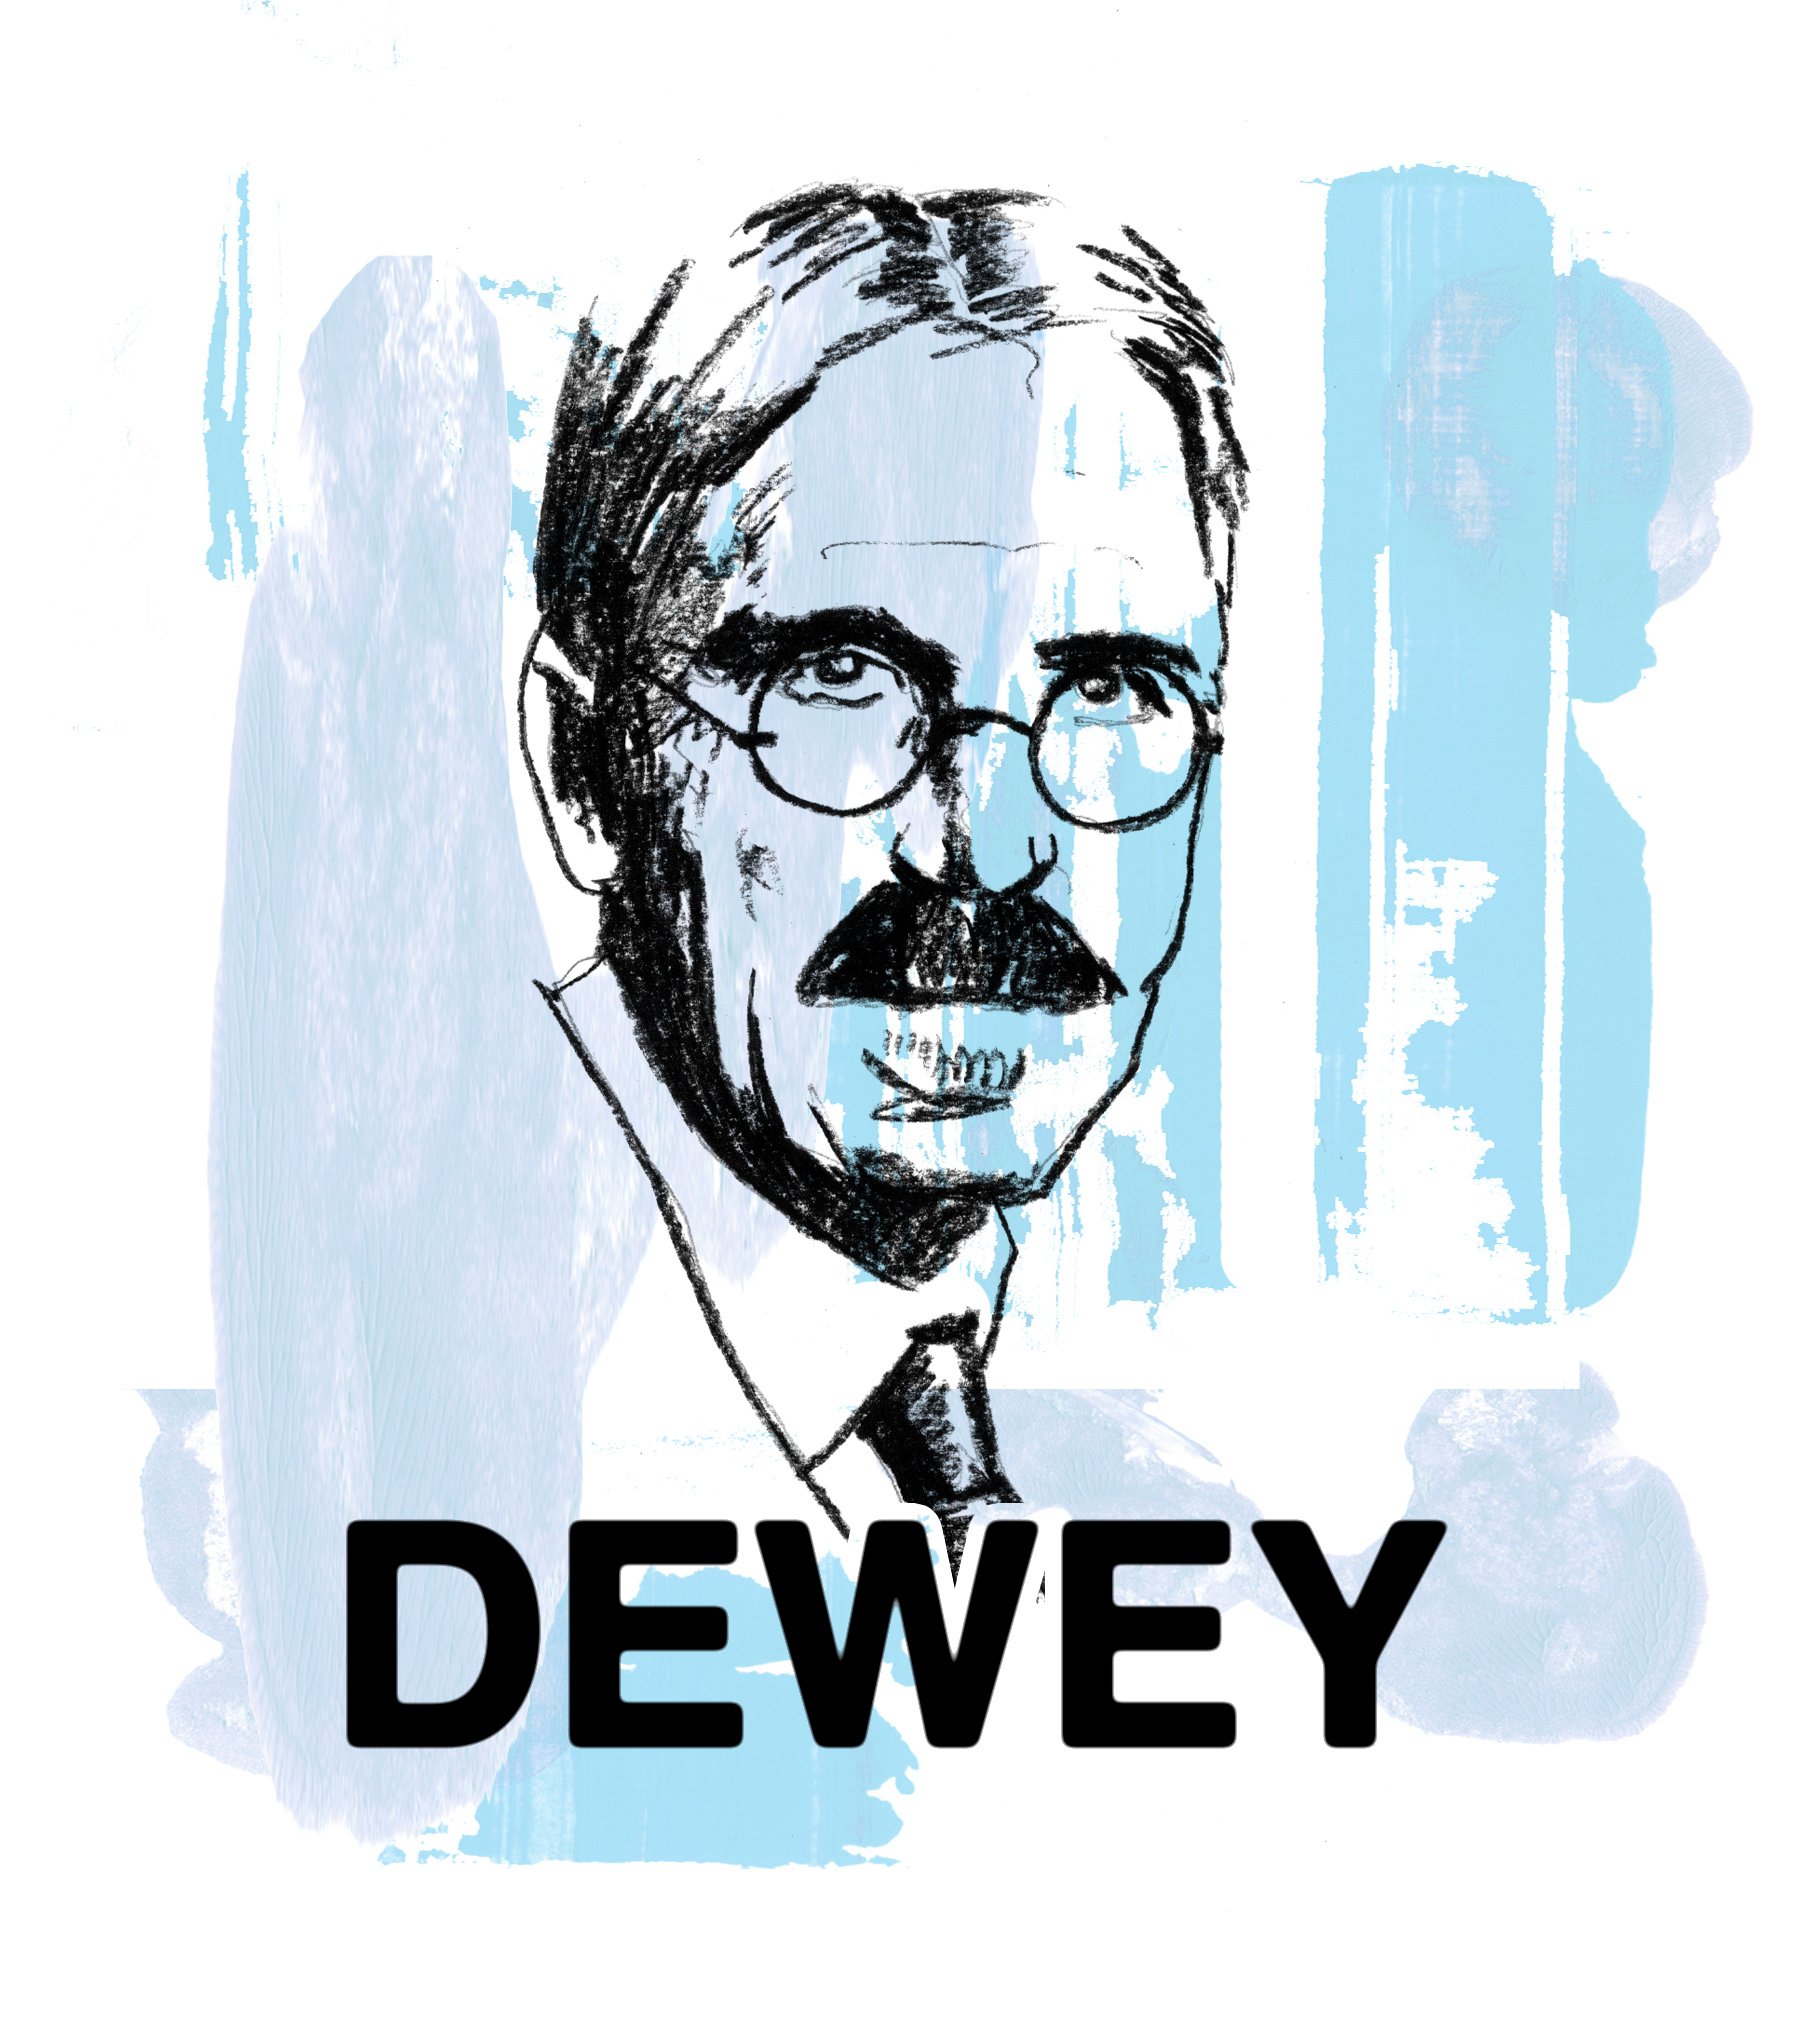 john dewey experience education essay